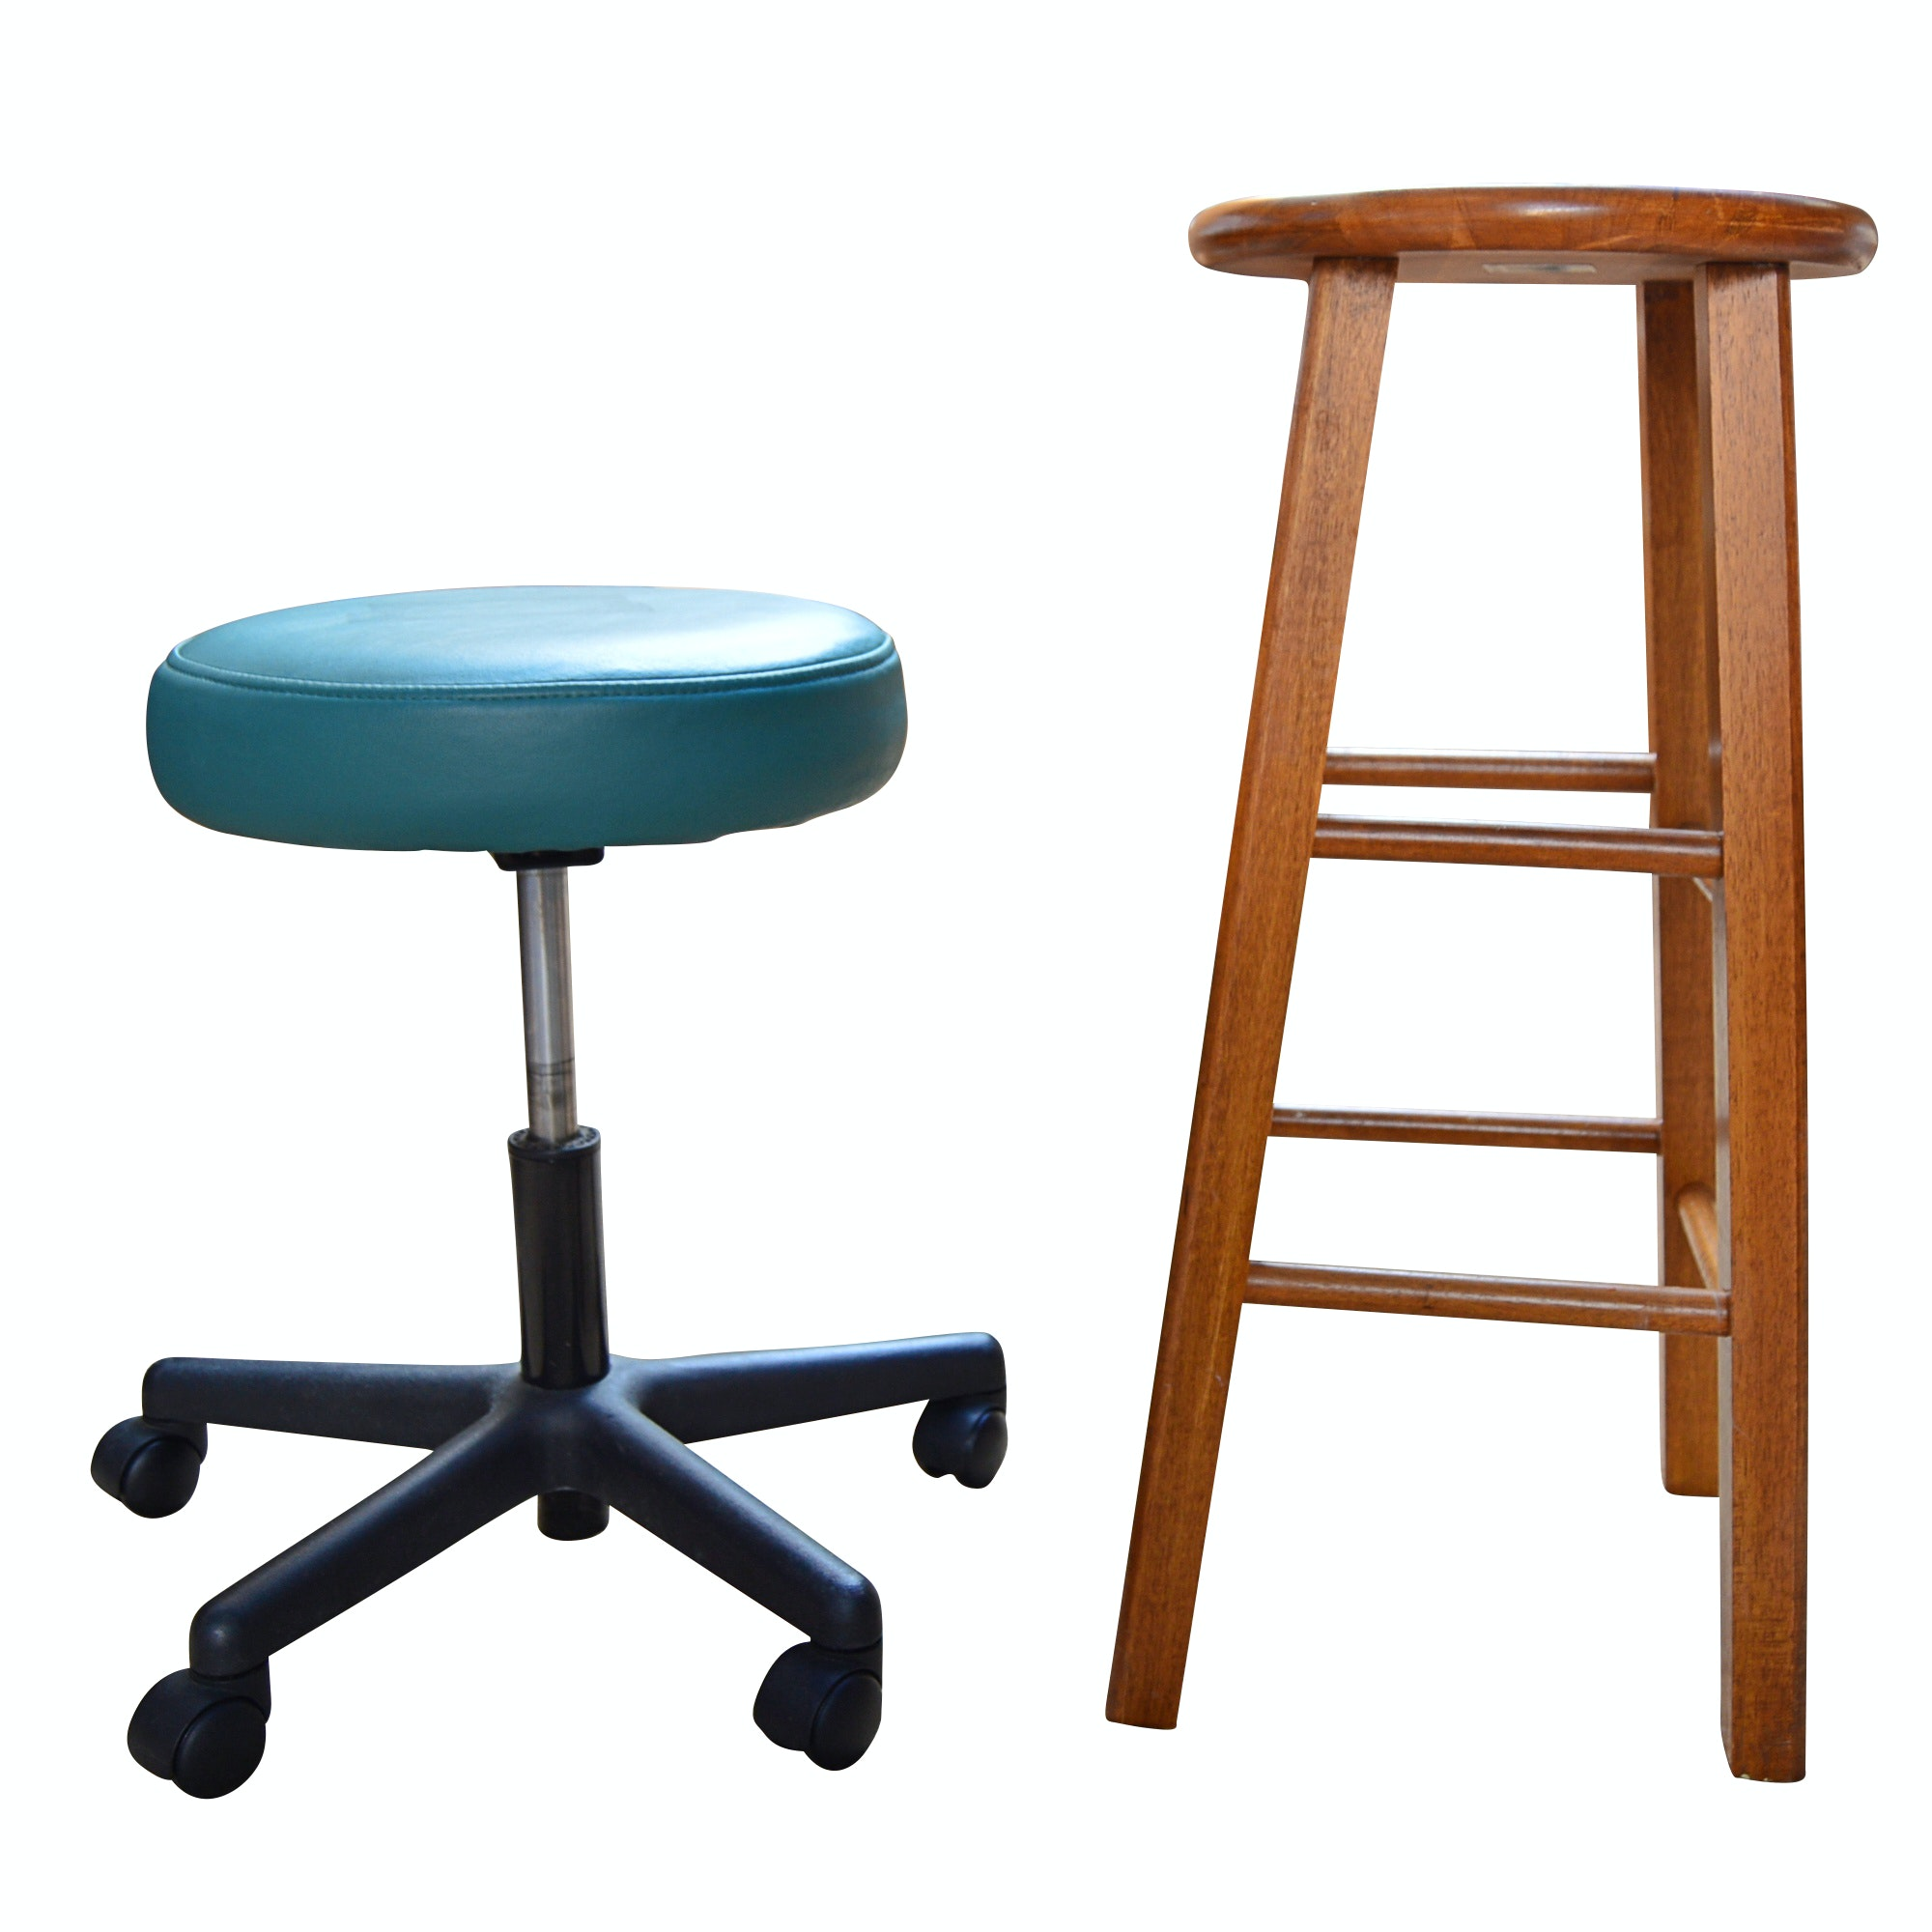 Oak Bar Stool and Vinyl Office Stool